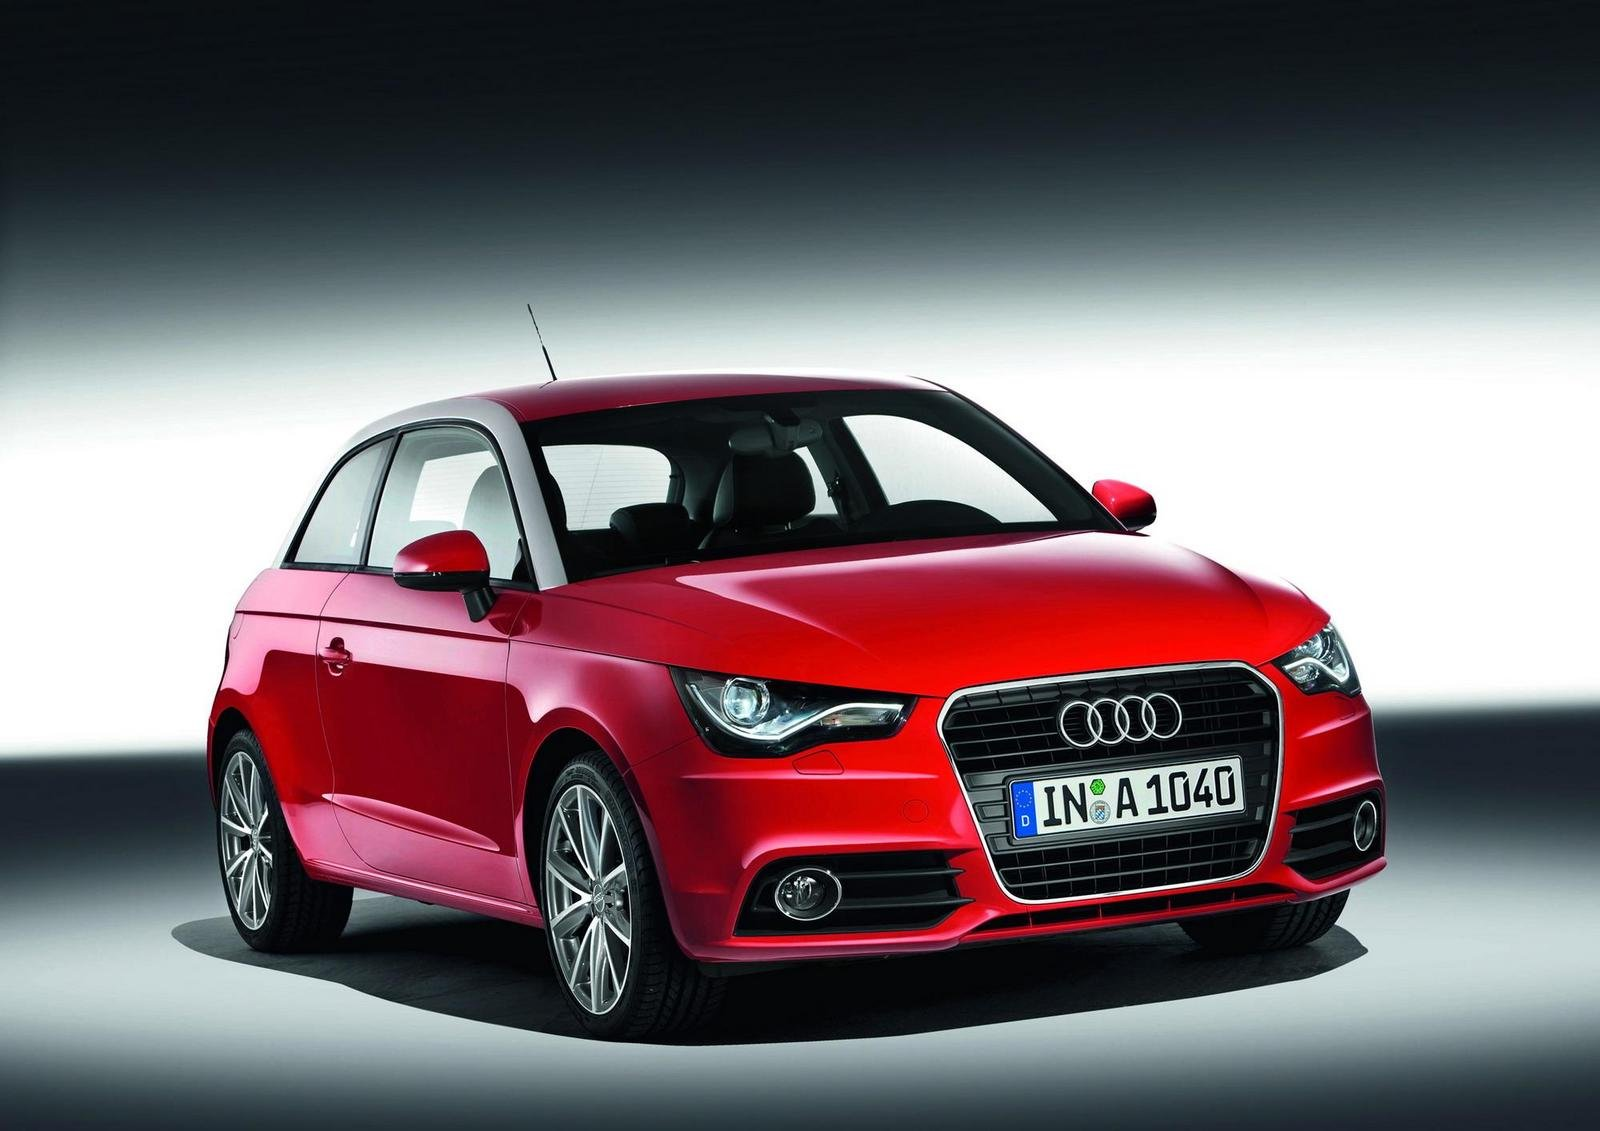 2011 audi a1 review top speed. Black Bedroom Furniture Sets. Home Design Ideas